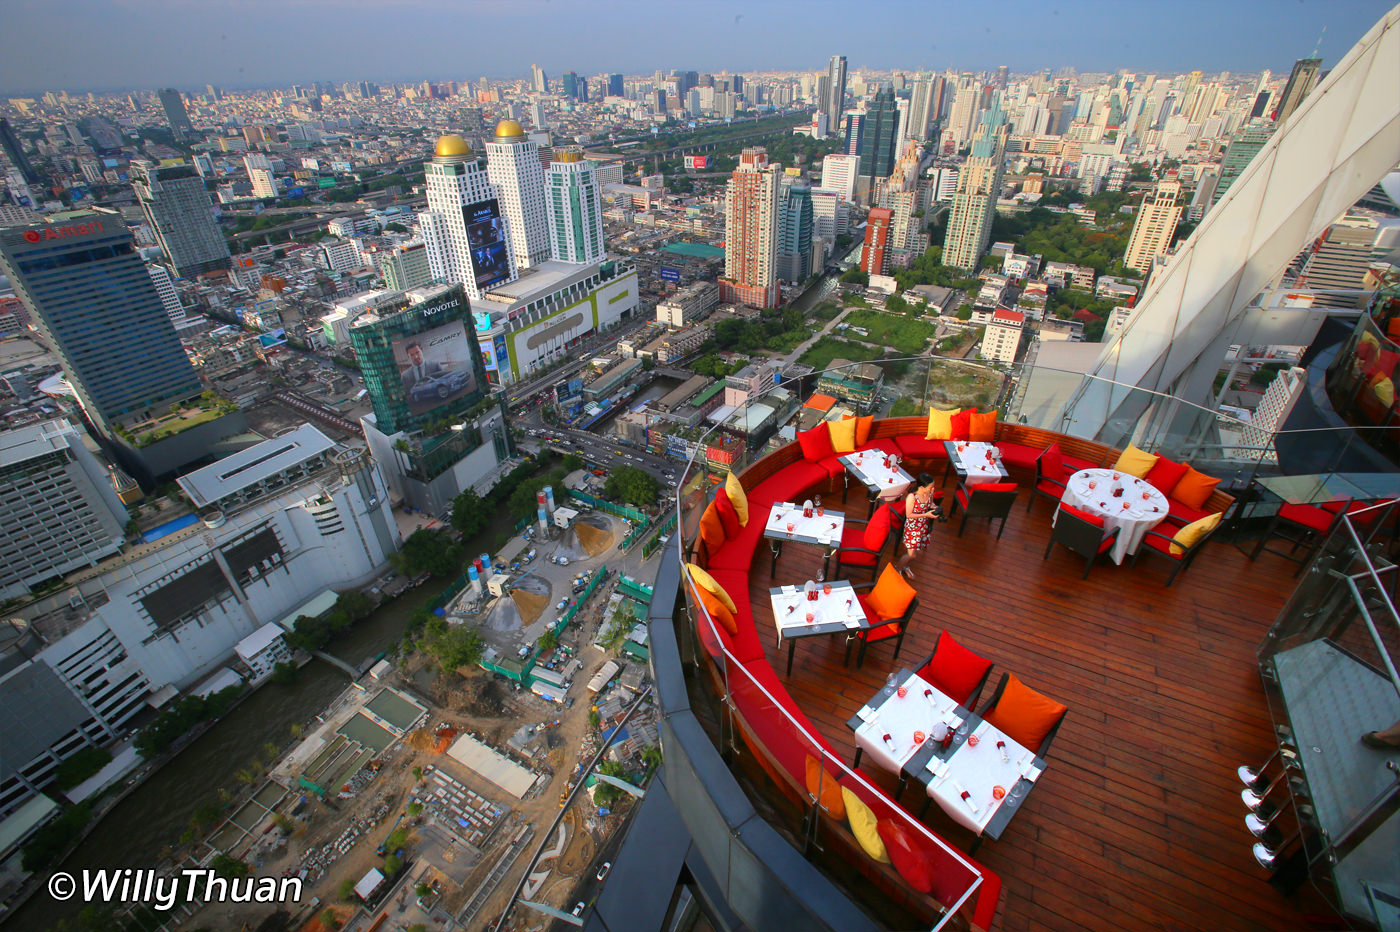 Red Sky Rooftop Restaurant and Bar in Bangkok